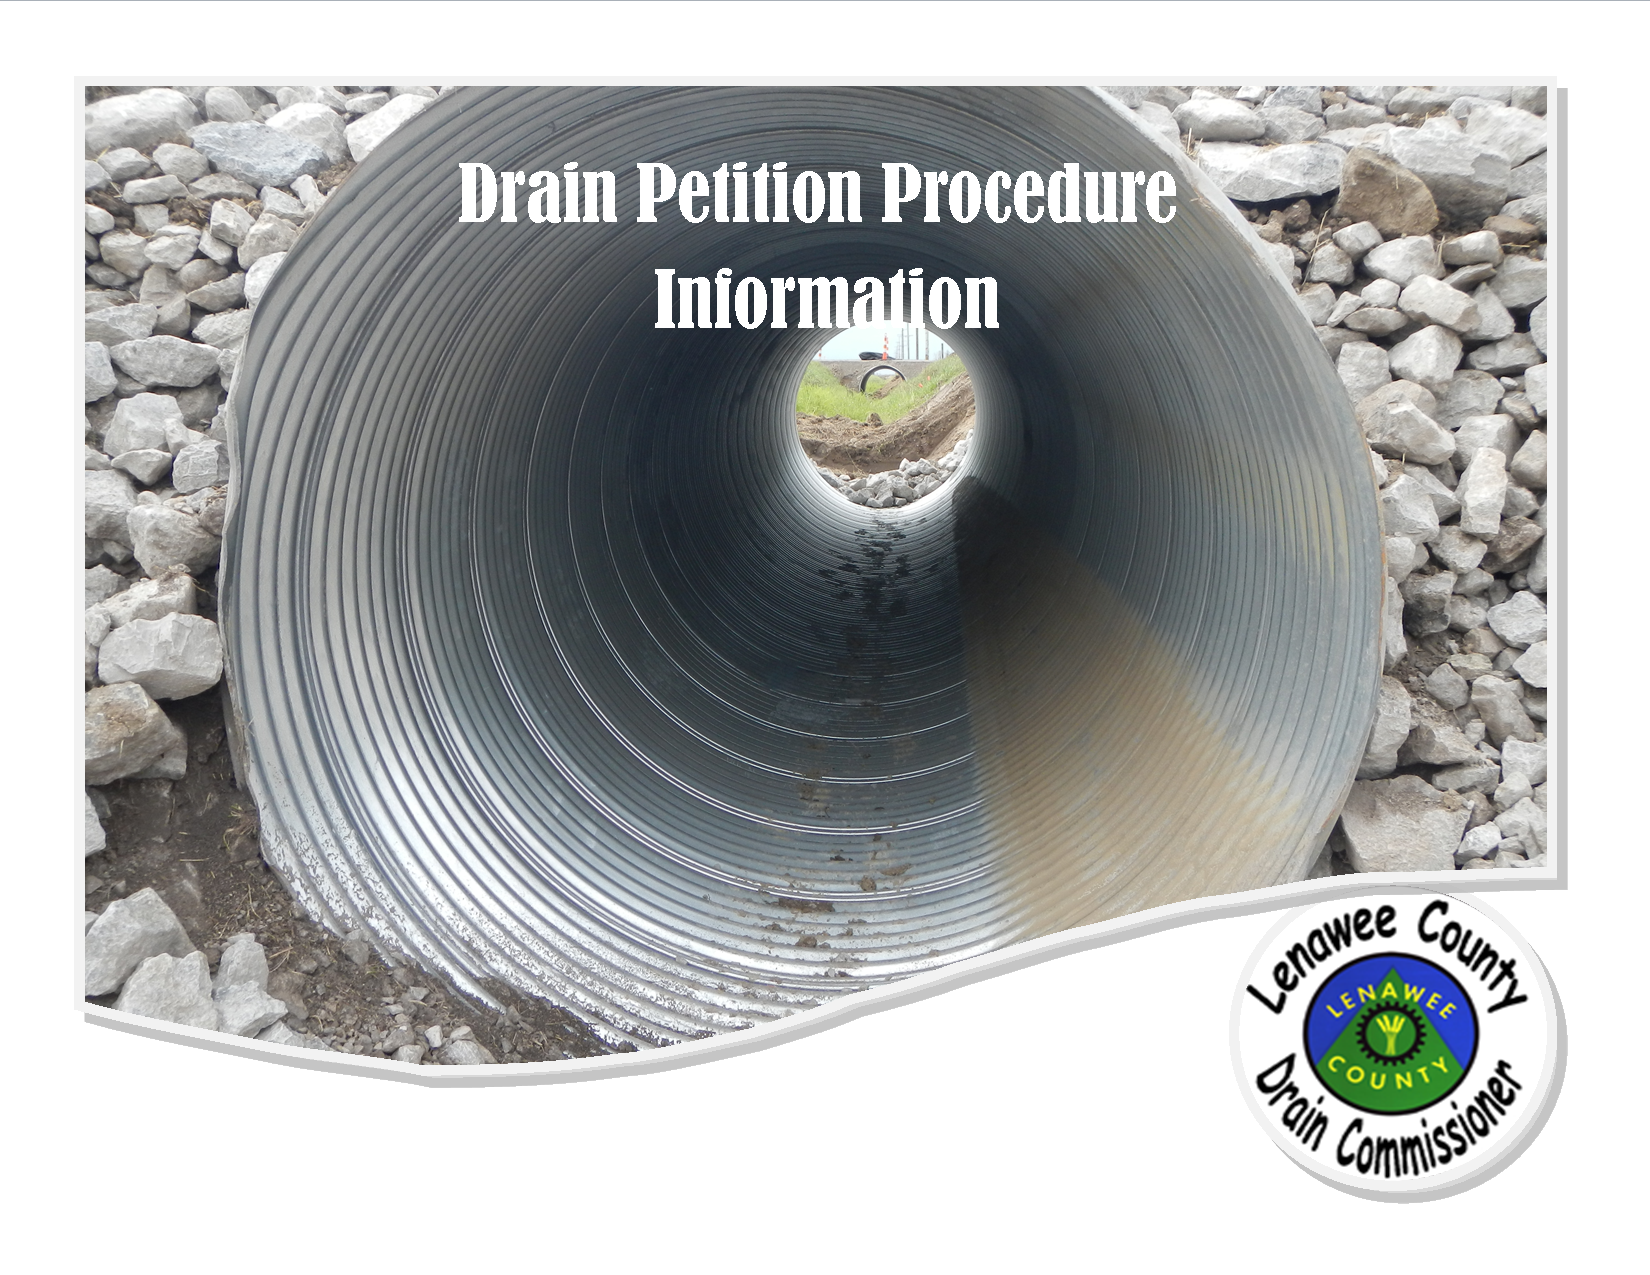 Drain Petition Procedures Brochure